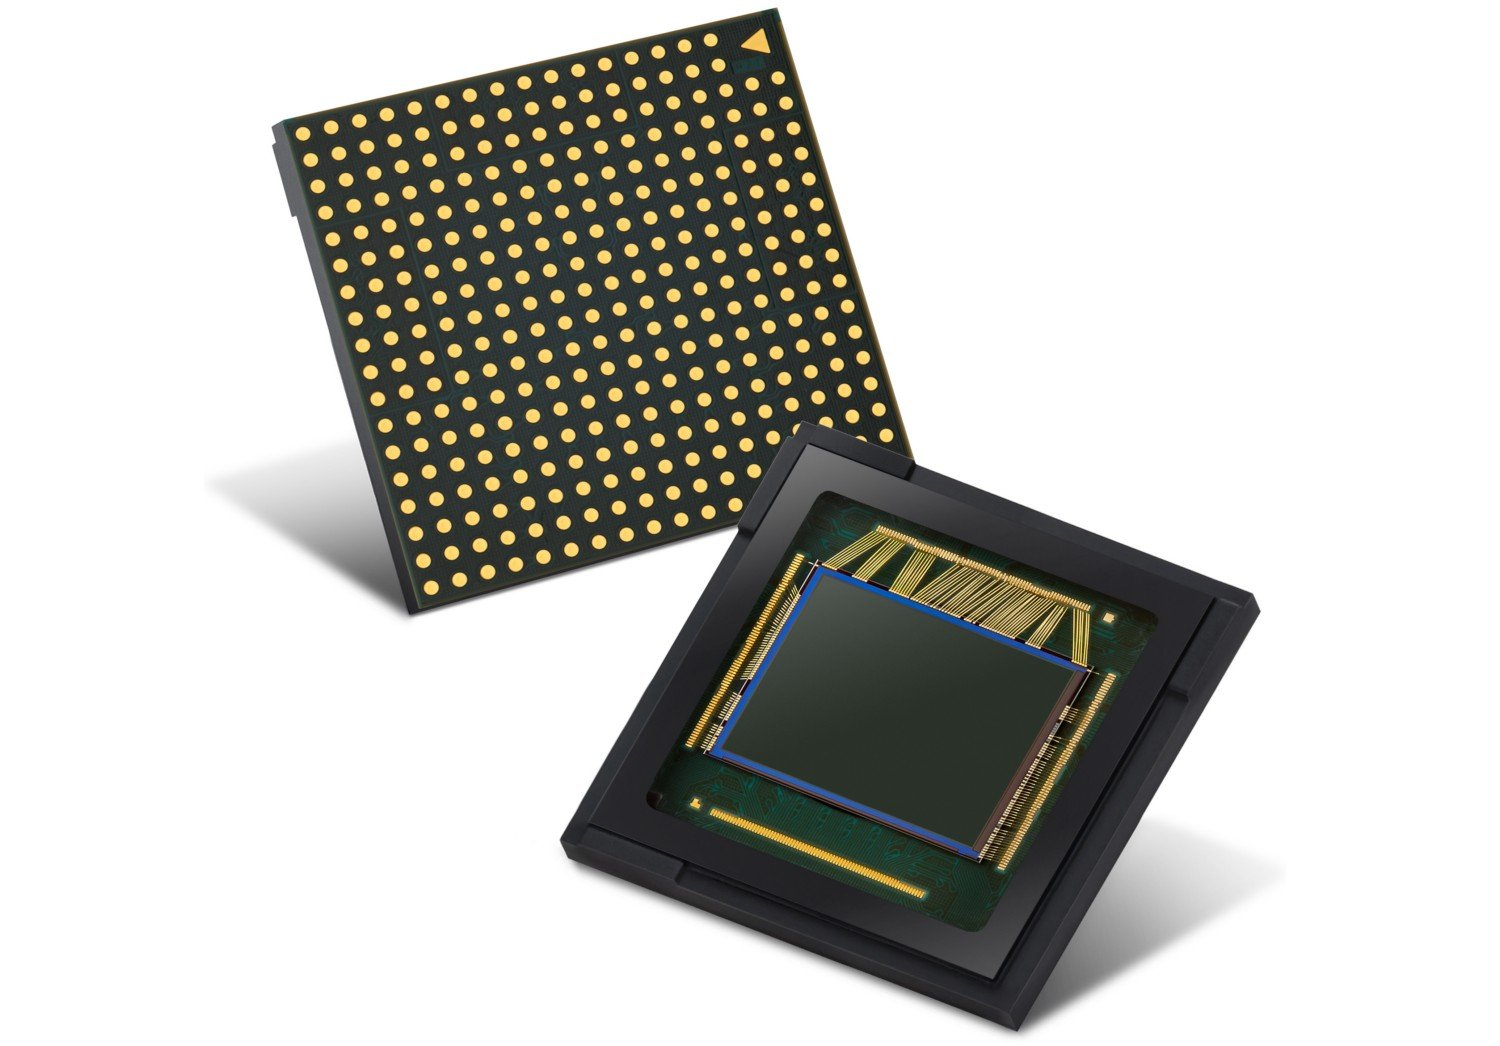 Samsung showcases the ISOCELL 2.0 tech, edging us closer to 100MP+ cameras